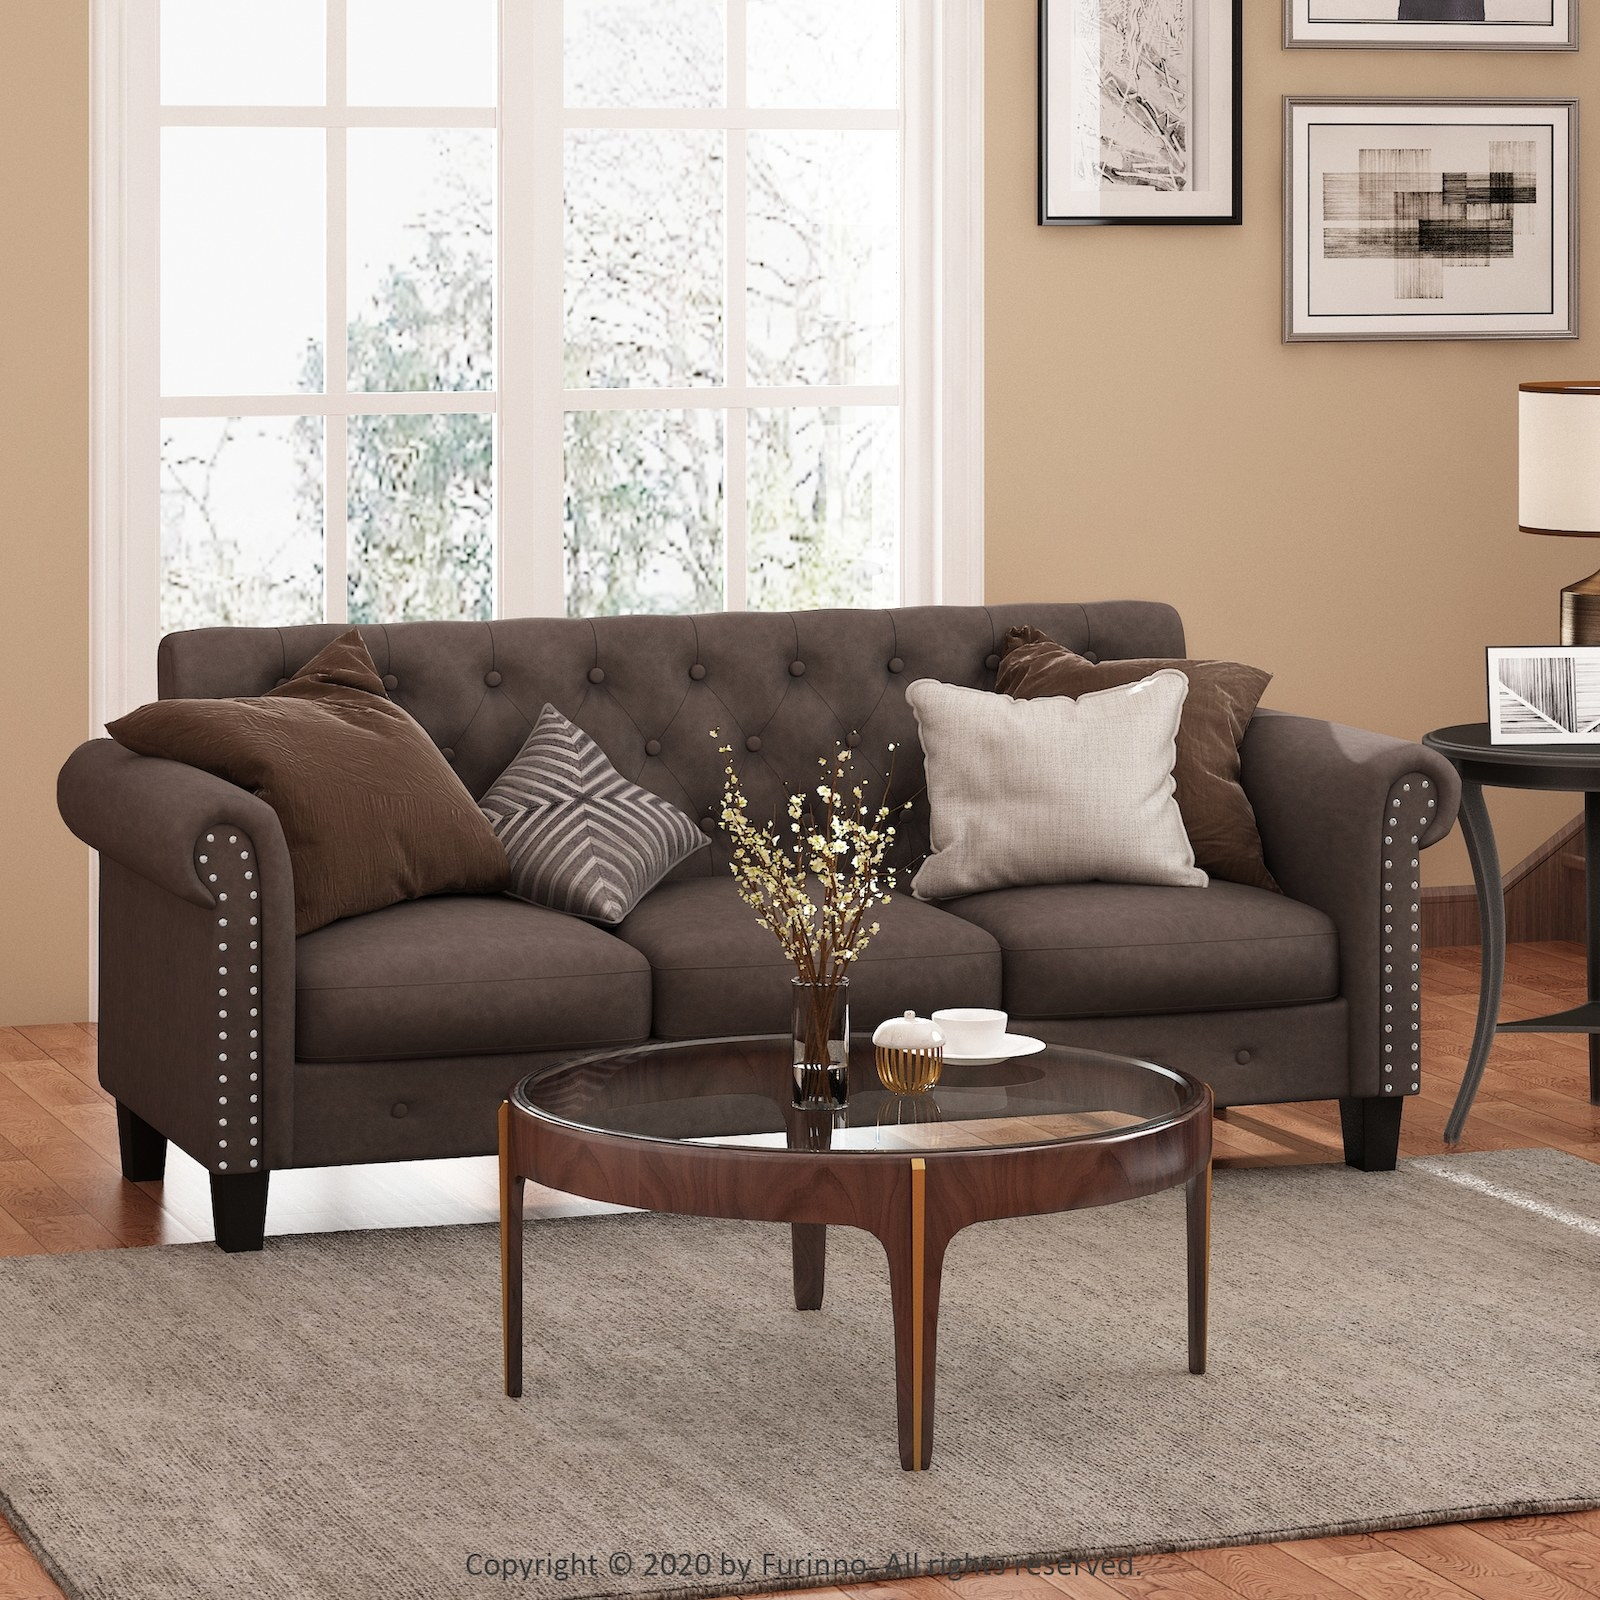 The brown couch with button tufting on the back cushion and nailhead accents on both arms